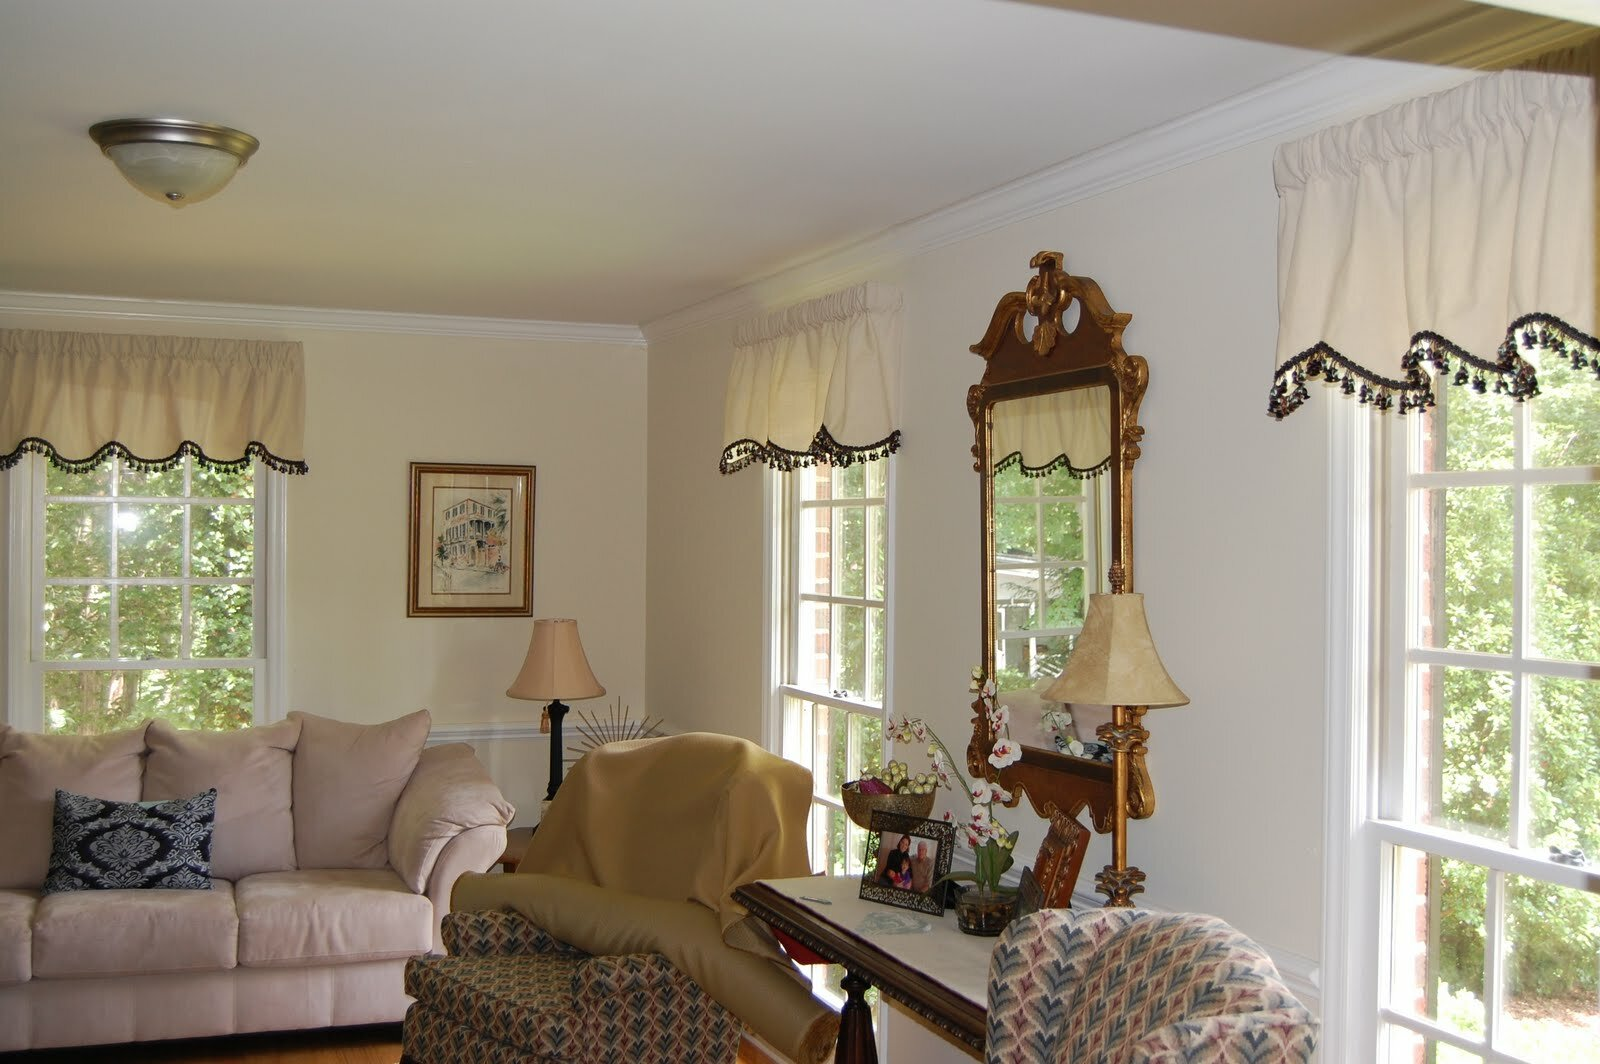 Living Room Valances  Windows Treatments Valance Window for Rooms Curtain Cute For Your Home Decorating Ideas